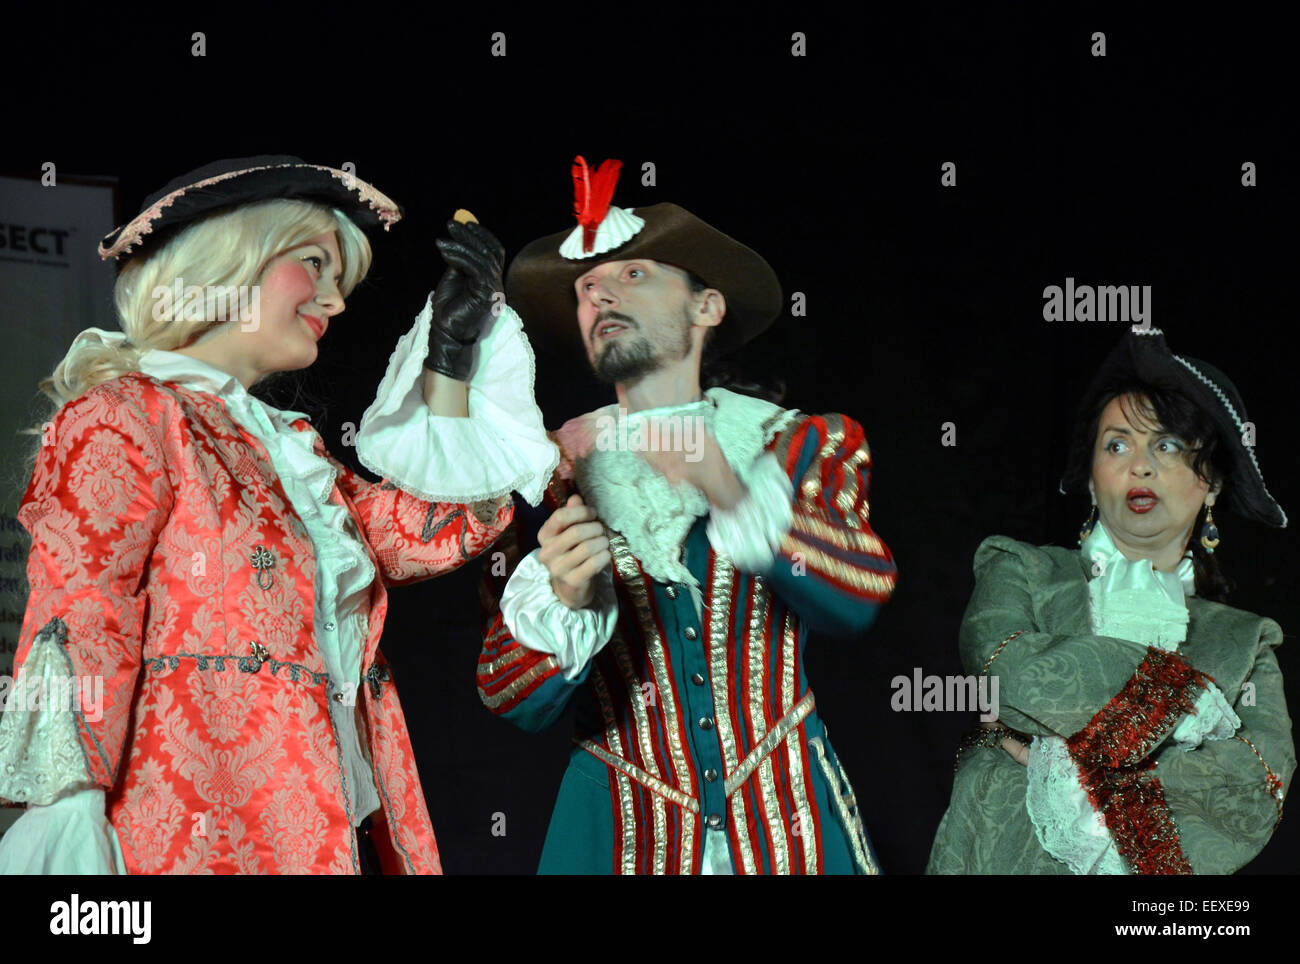 Bhopal, India. 22nd Jan, 2015. Artists from Romania stage drama 'Triumph of Love', an English adaption of - Stock Image